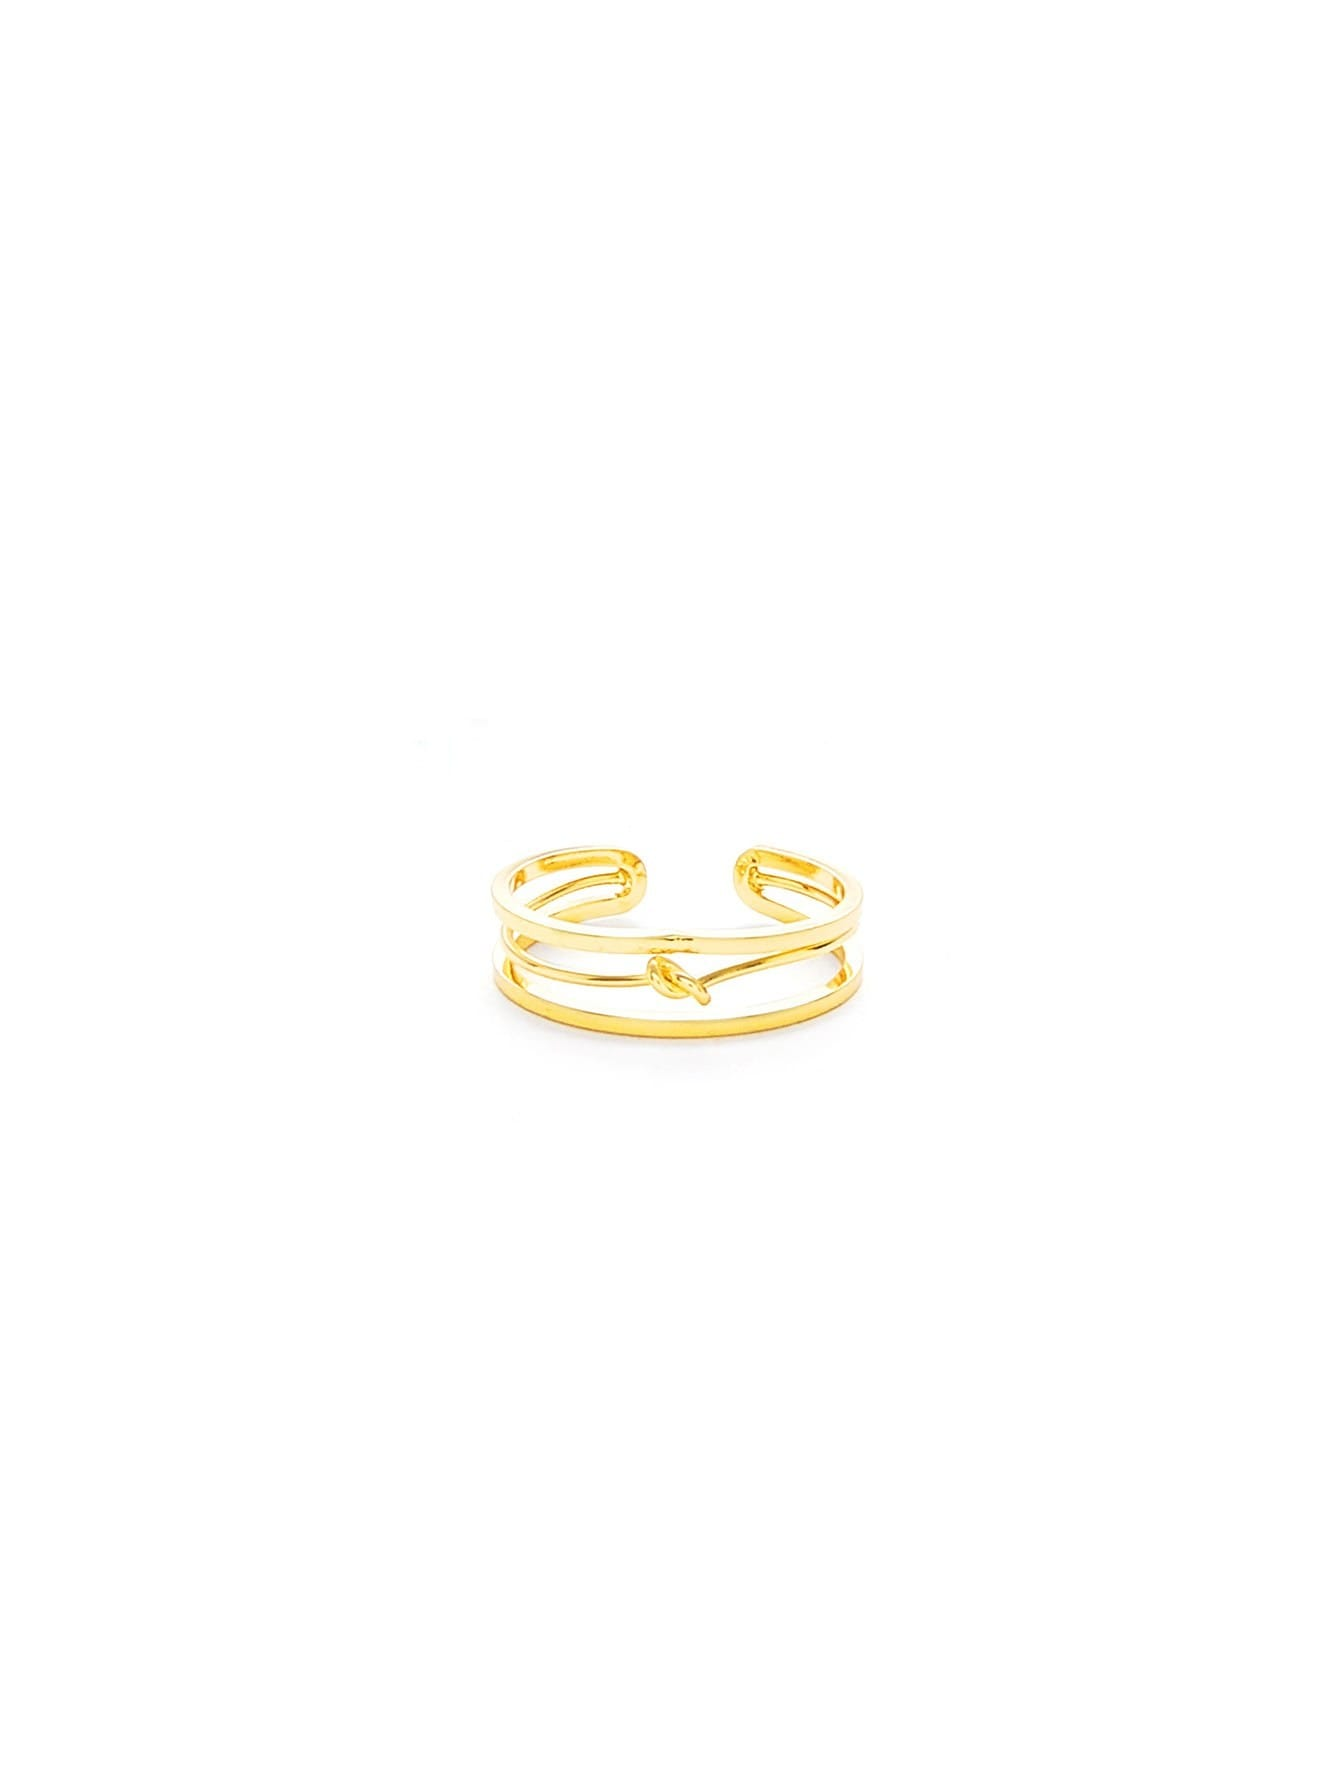 Knot Design Hollow Ring